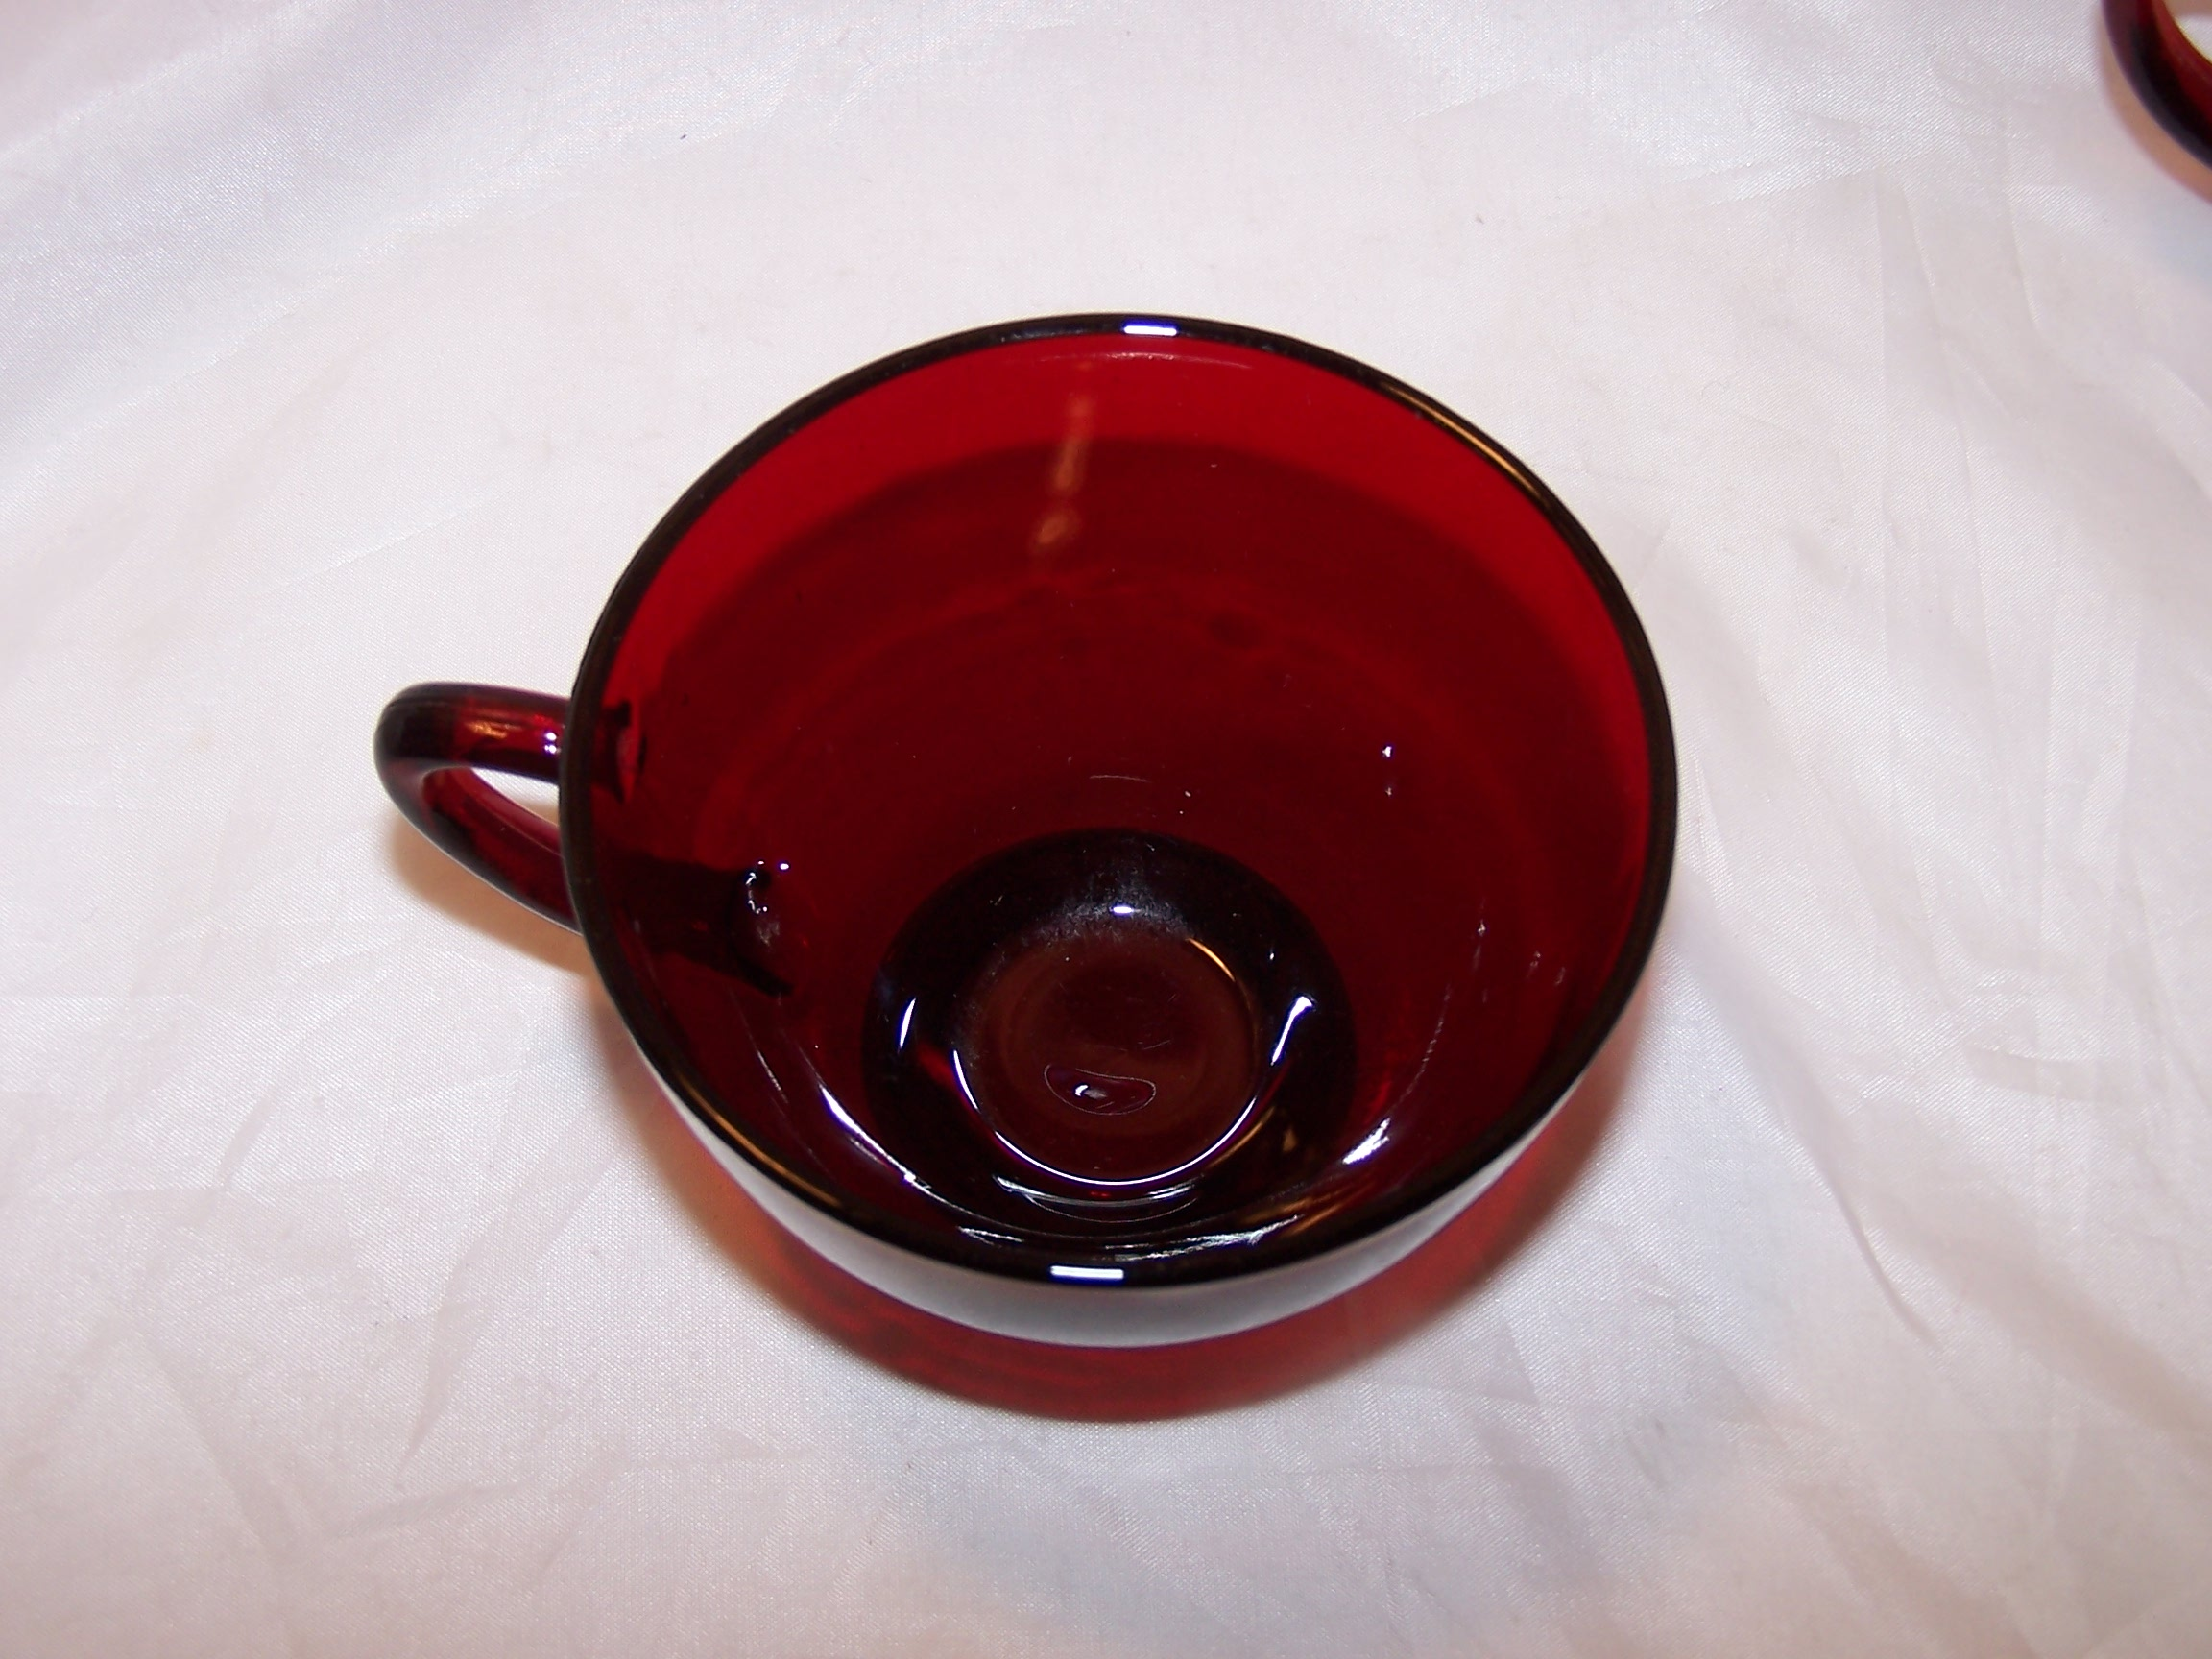 kitchen handles aid hand blender ruby red depression glass plates, cups, sugar bowl